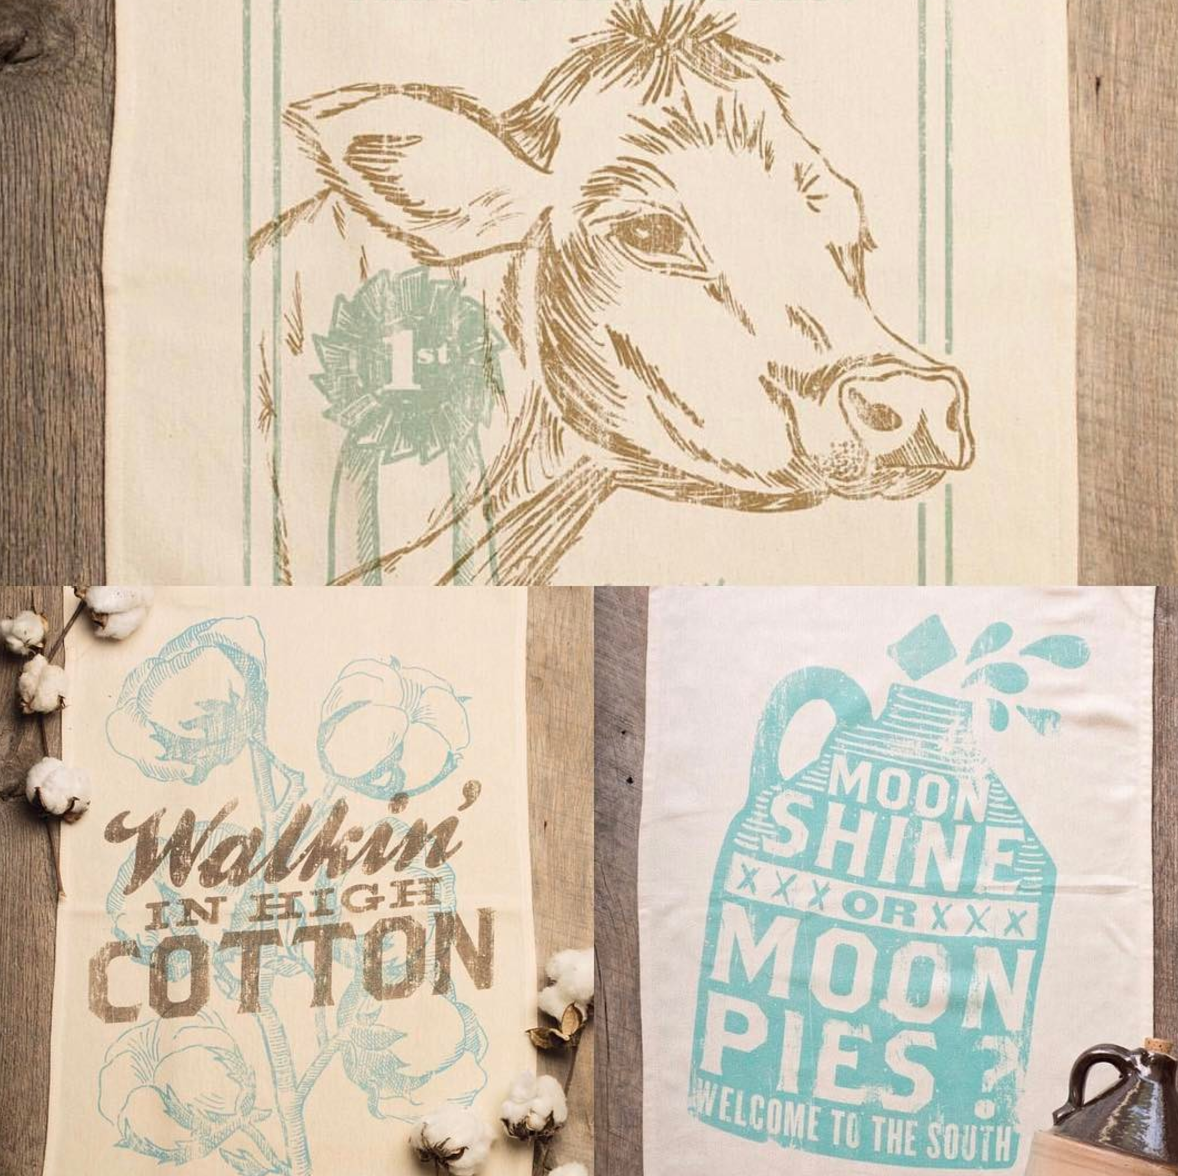 Farm Tea Towels available in store or on our website!  www.homeandhash.com  Precious!!!